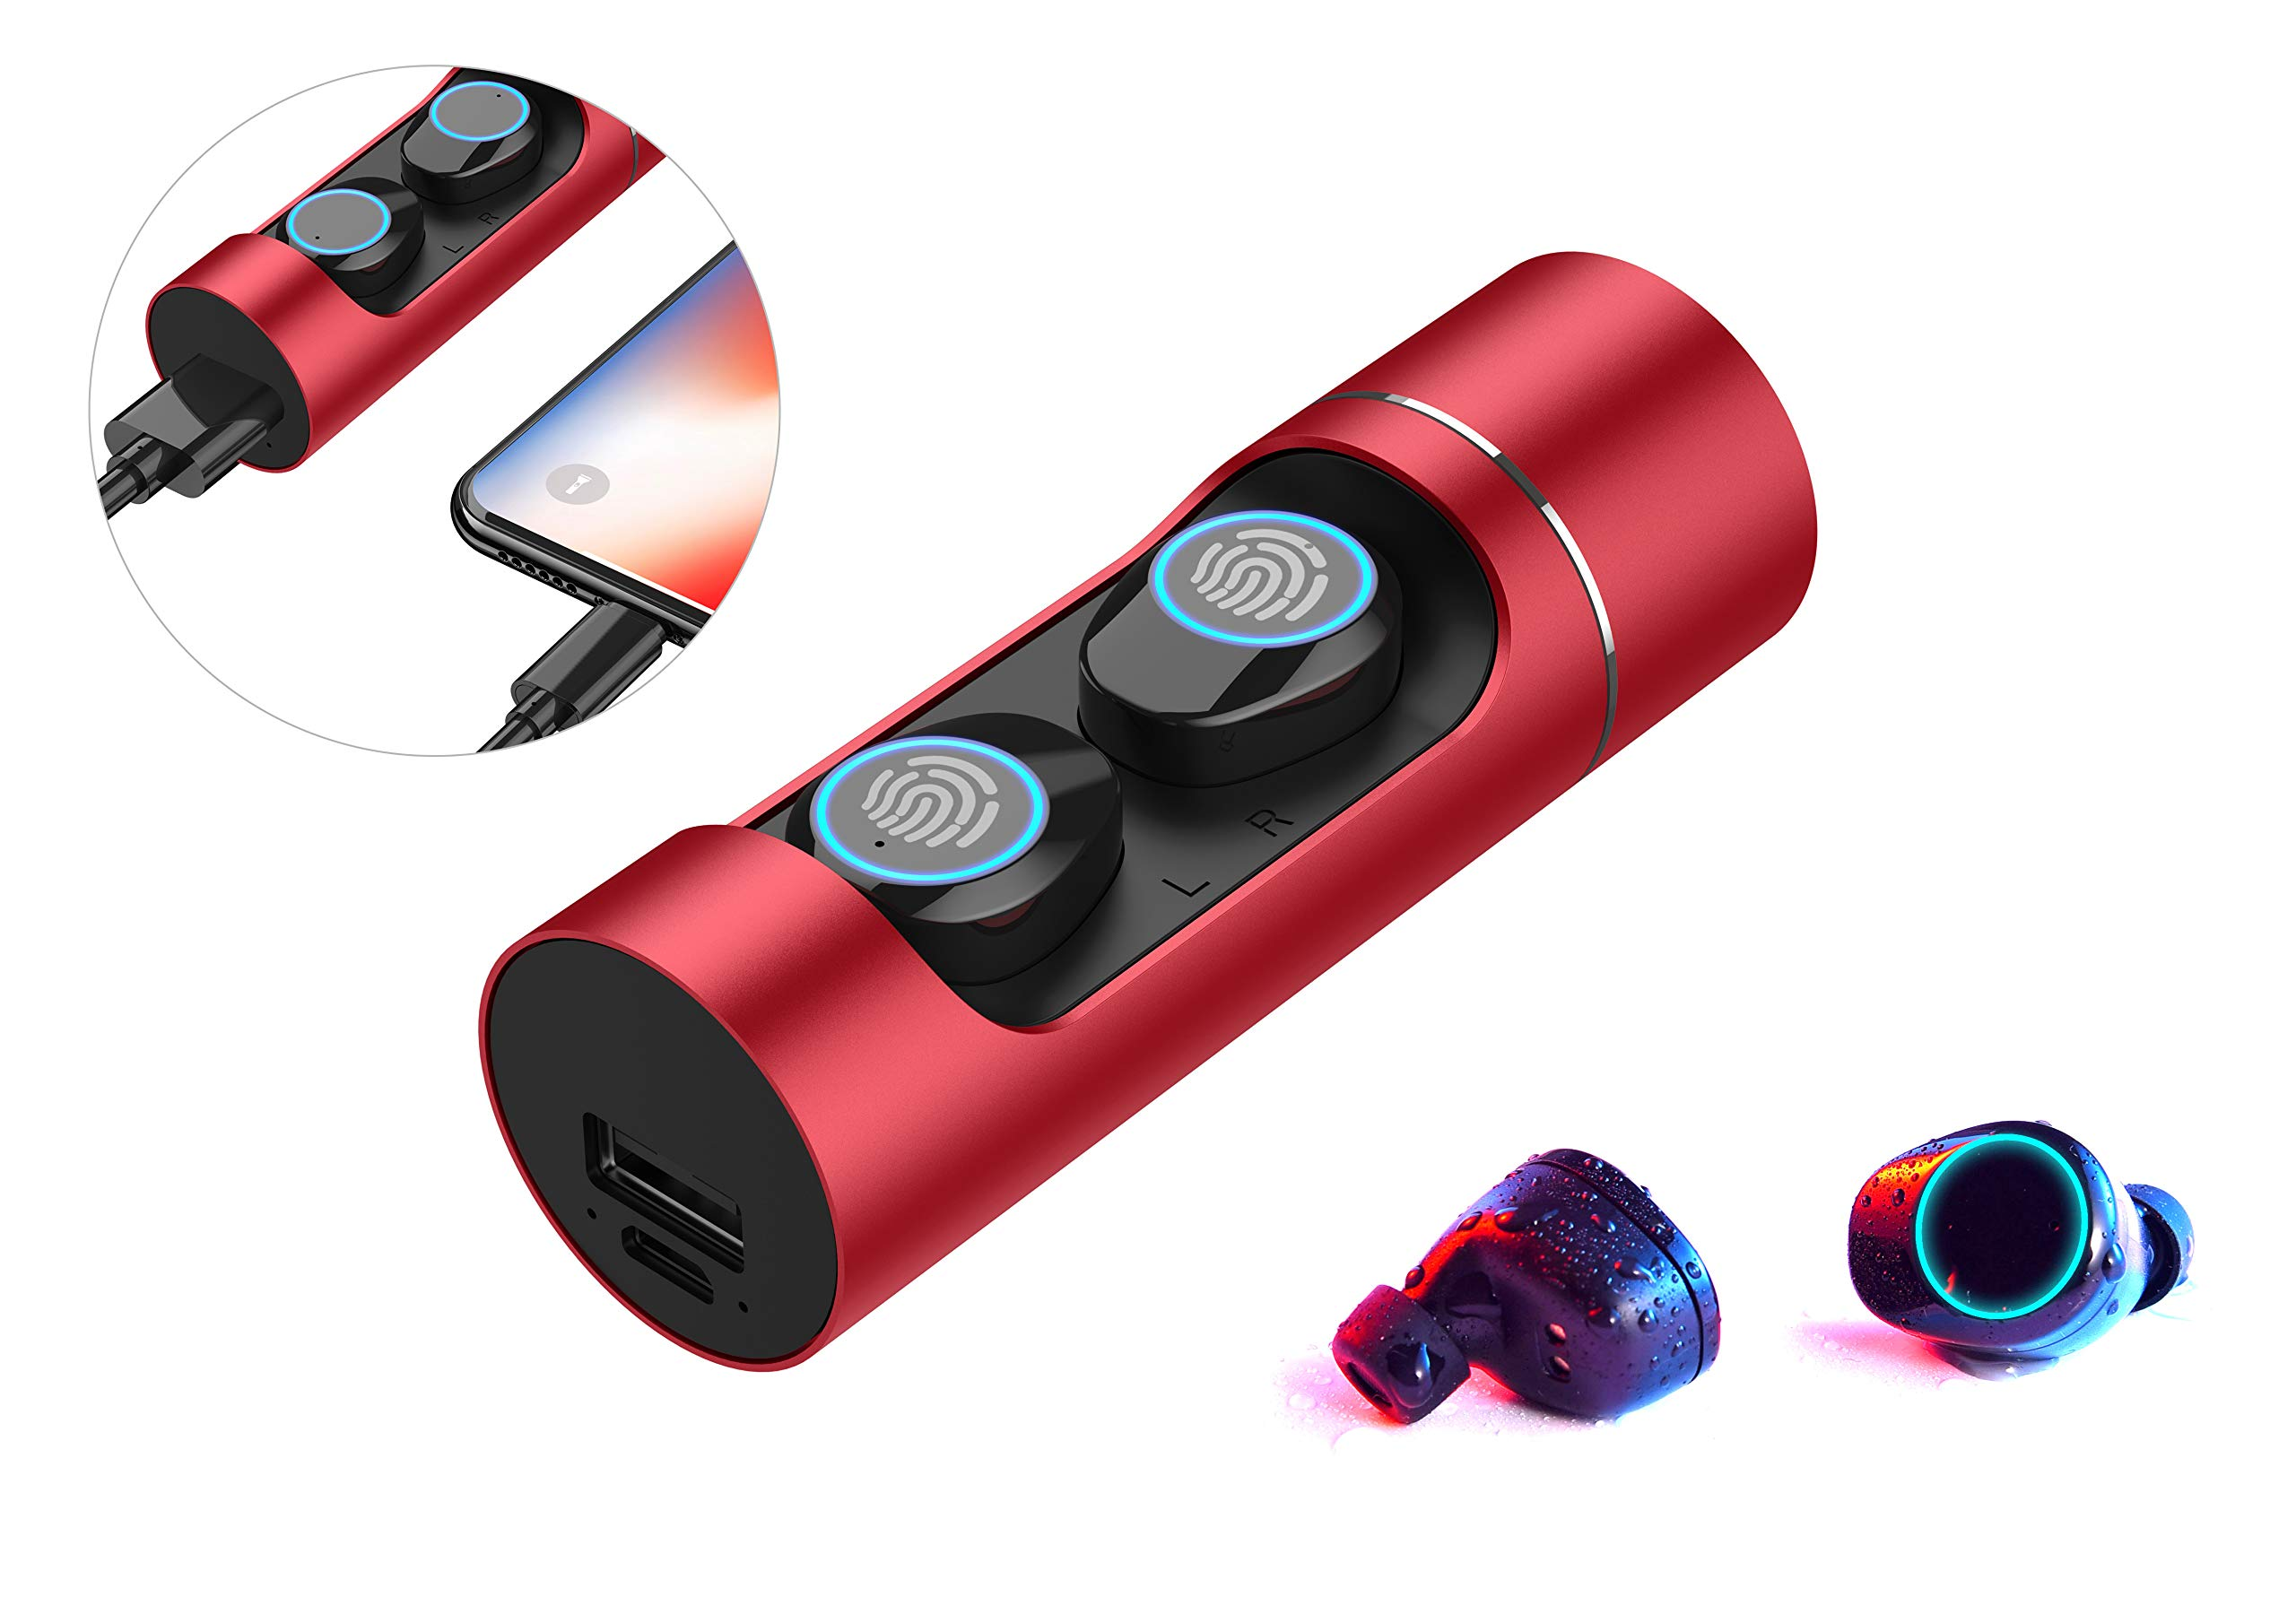 Wireless Earbuds True 5.0 Bluetooth with Microphone Binaural Call Active Noise Cancelling Auto Pairing Bass Boost Battery Bank with Charging Case Fingerprint Touch Classic Universal Red Sweatproof